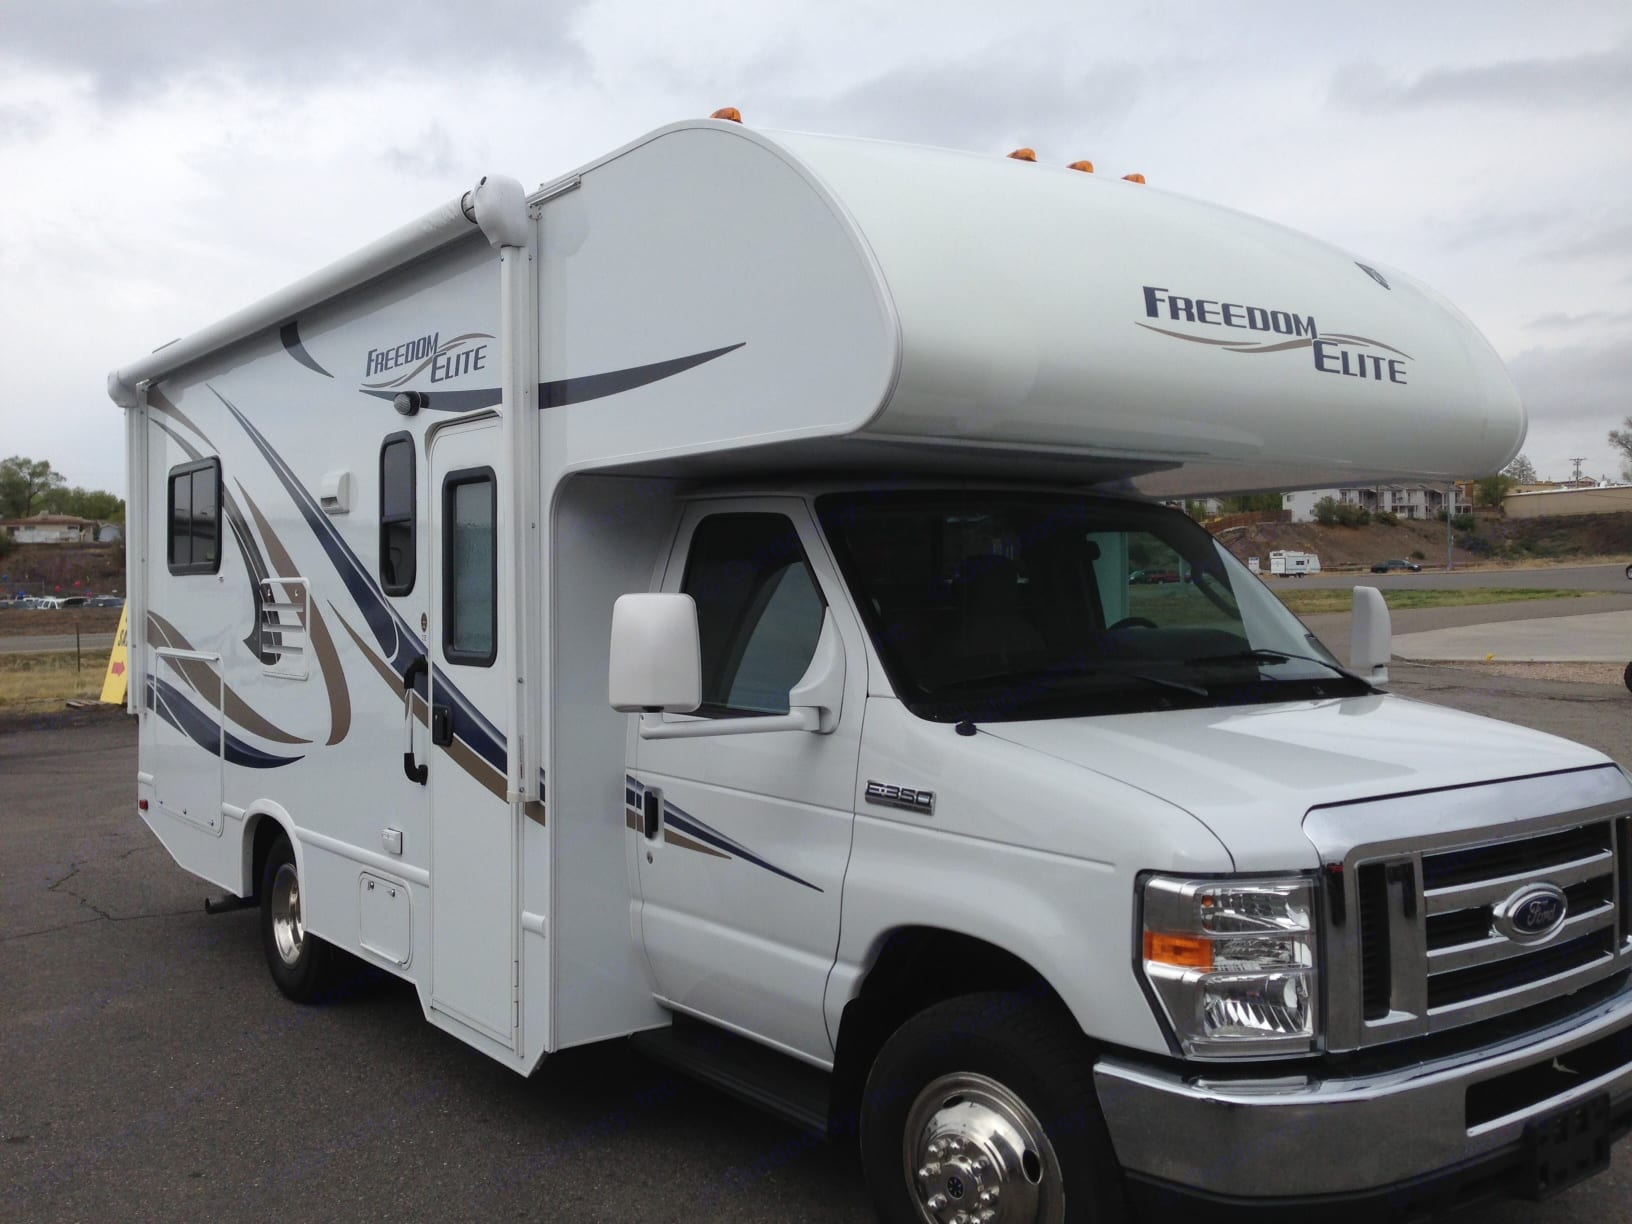 Perfect sized well kept Class C Motorhome. Thor Freedom Elite 2015